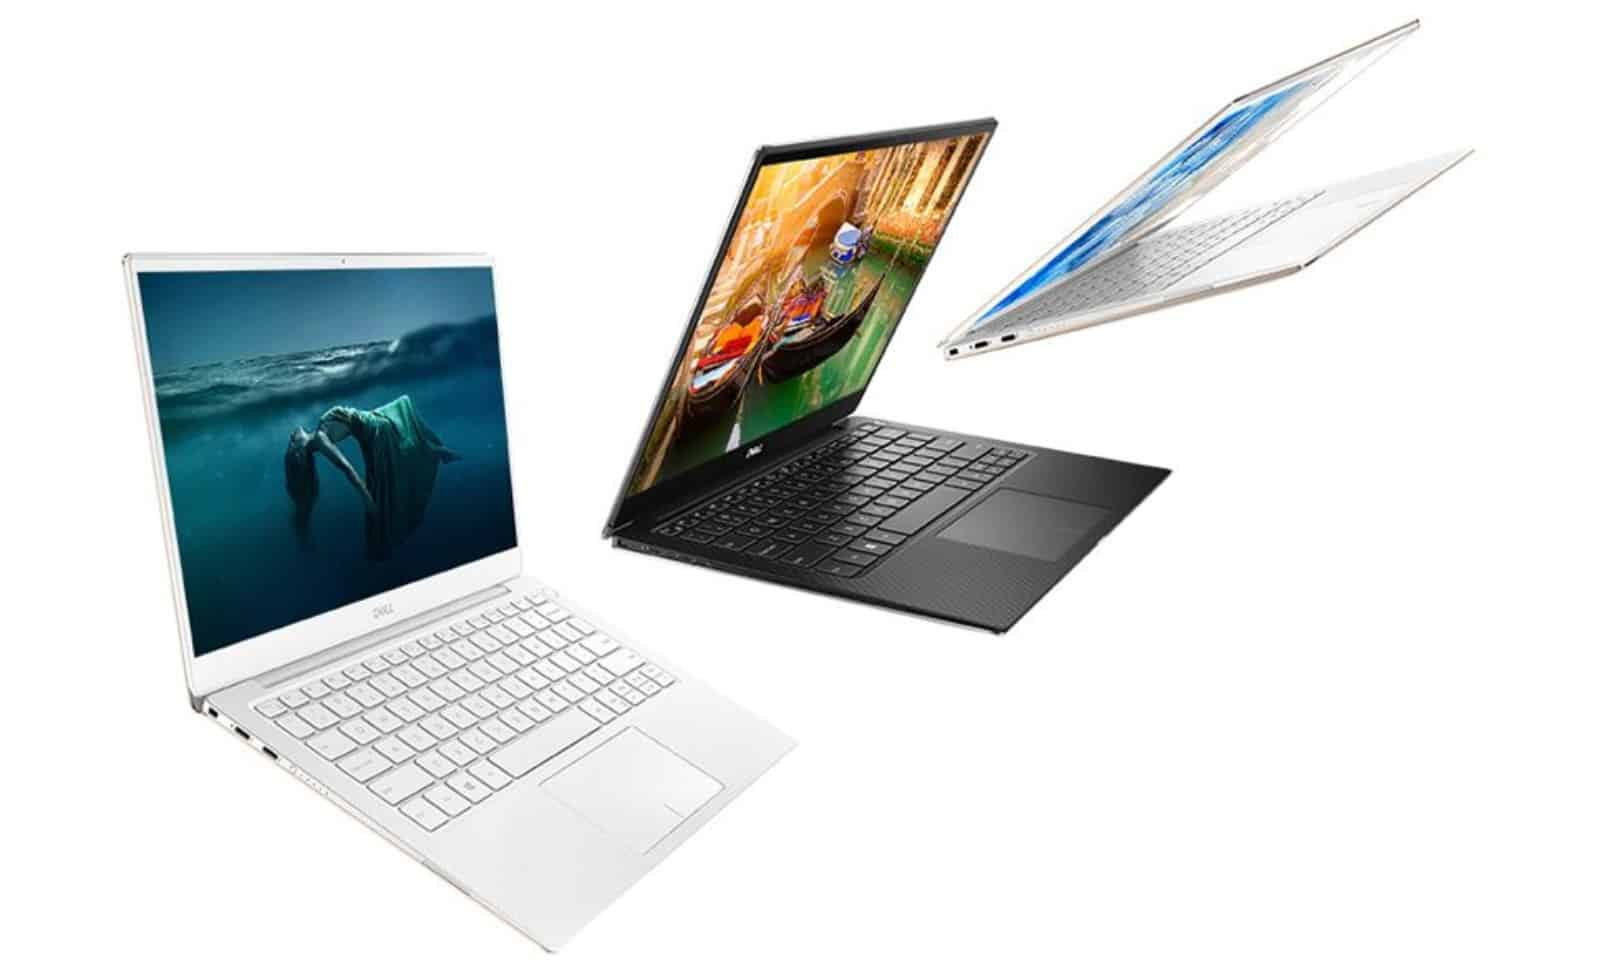 Dell notebooks xps 13 9380 pdp ac 3